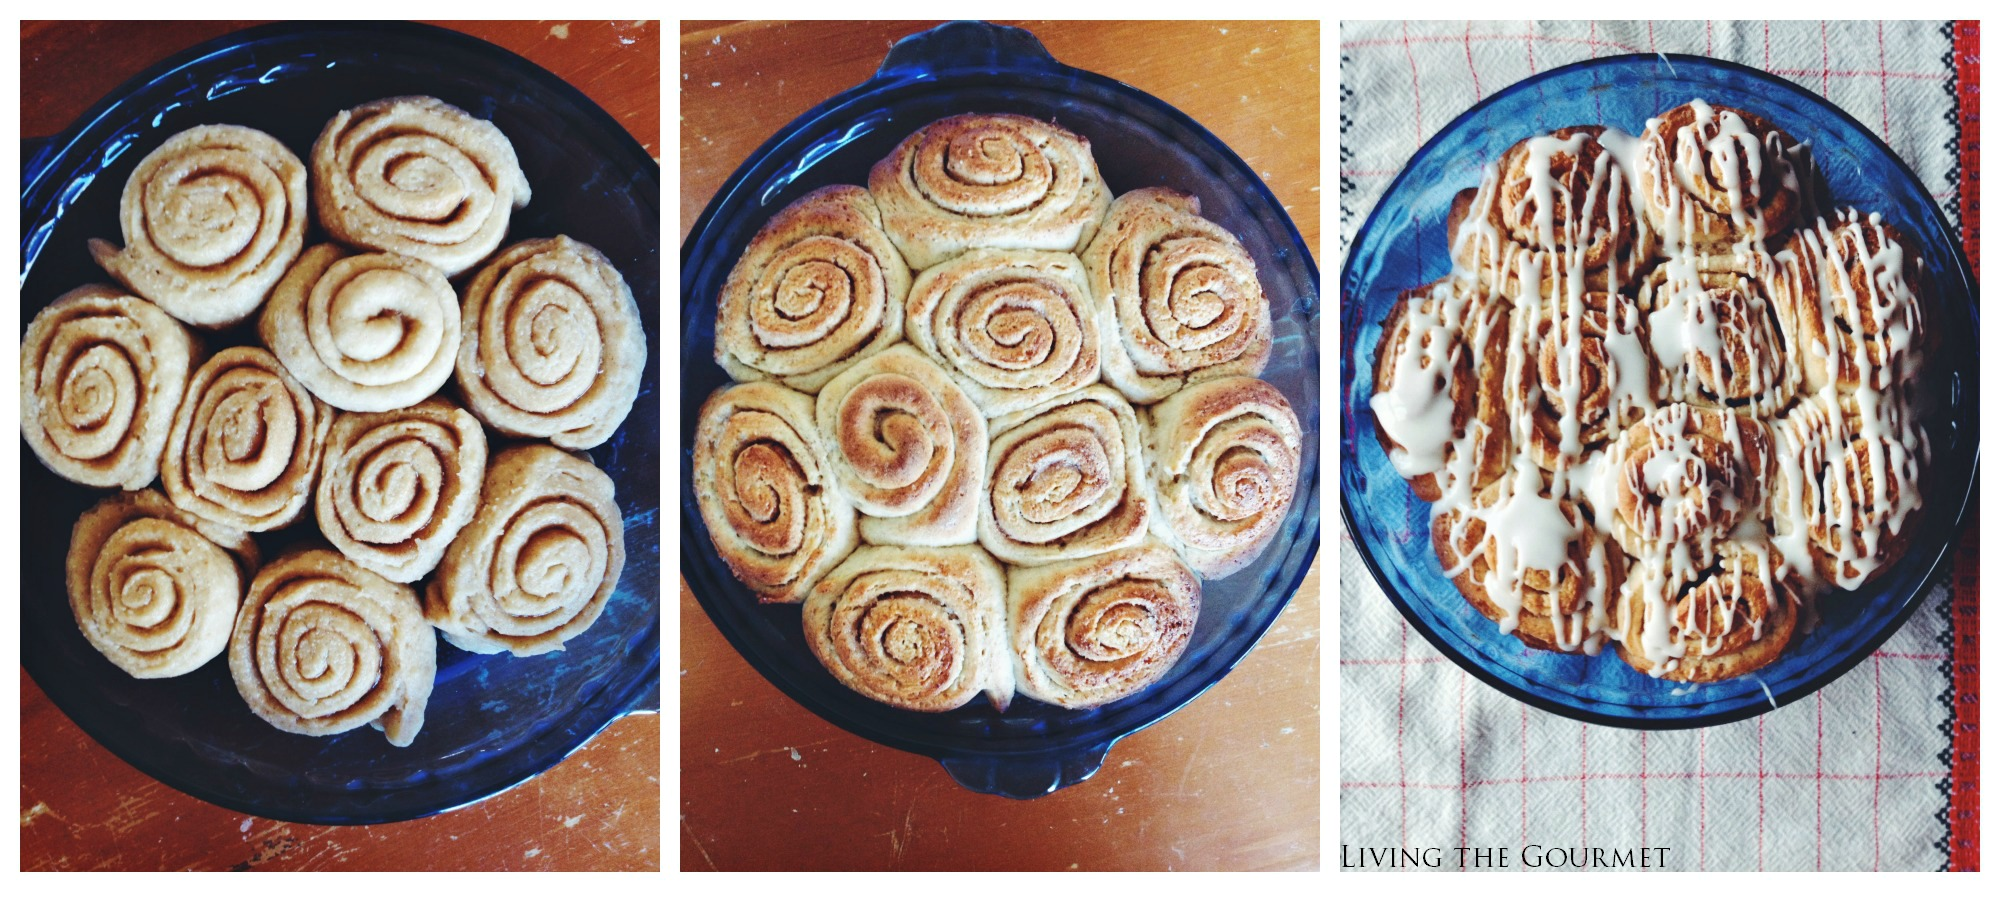 Living the Gourmet: Easy Cinnamon Rolls {with cakemix}